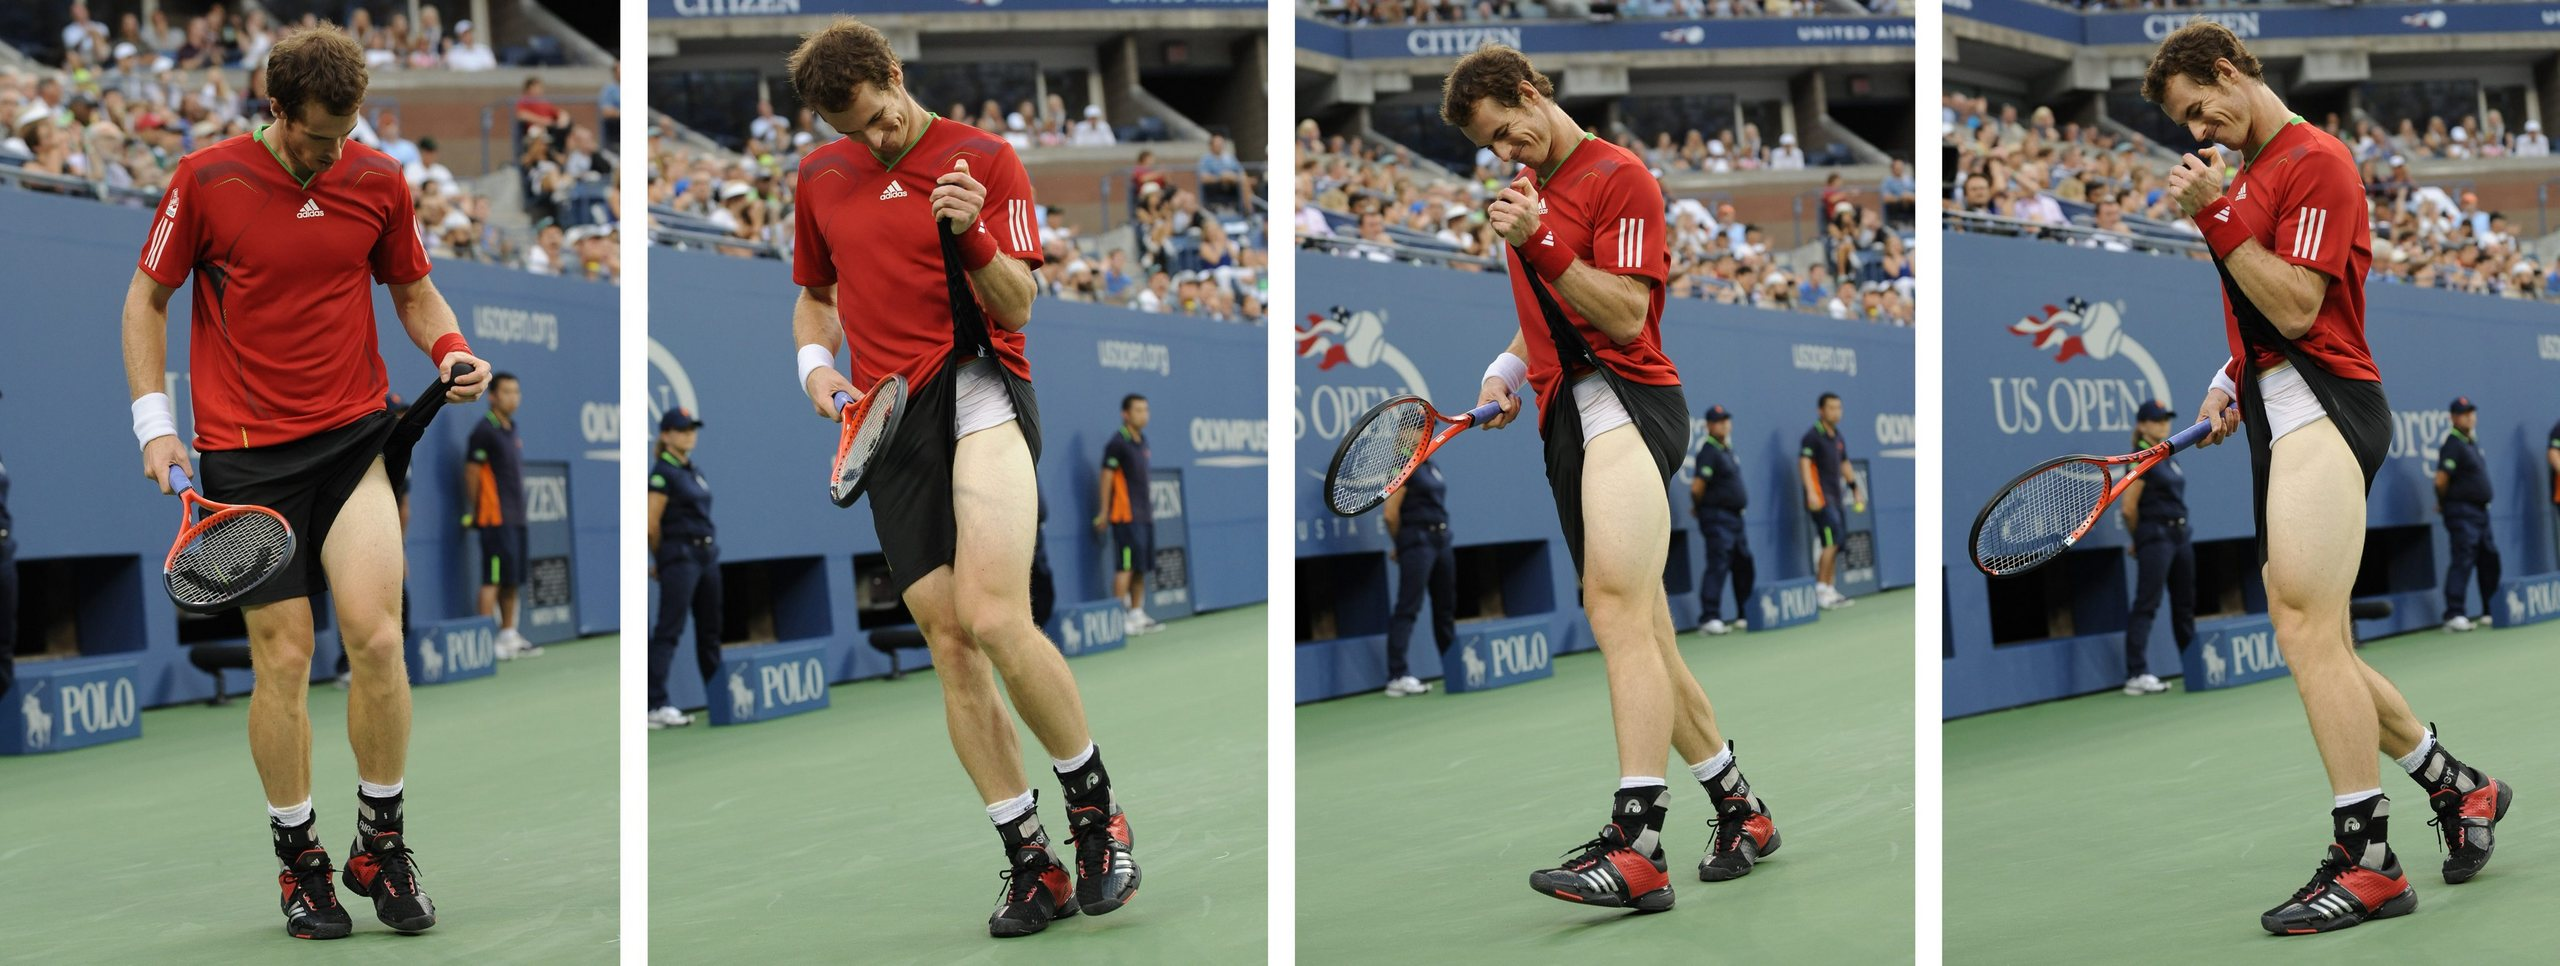 Newbilies Naked Photo Of Andy Murray